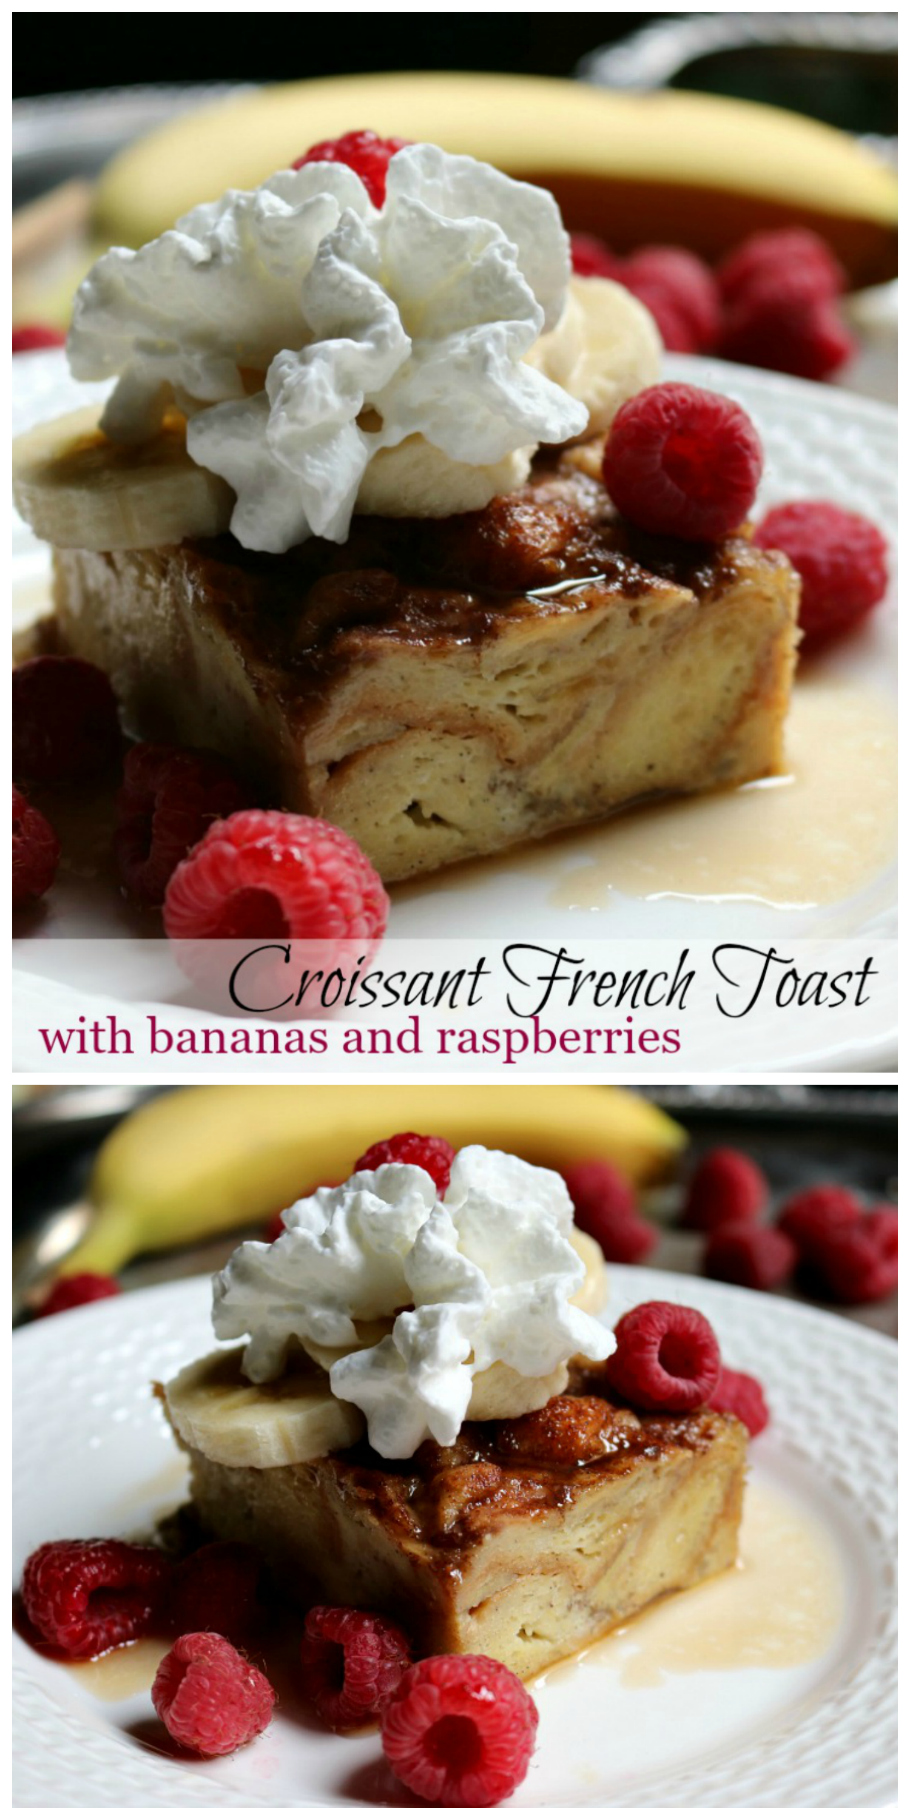 Croissant French Toast Casserole with Bananas and Raspberries Recipe by CeceliasGoodStuff.com Good Food for Good People